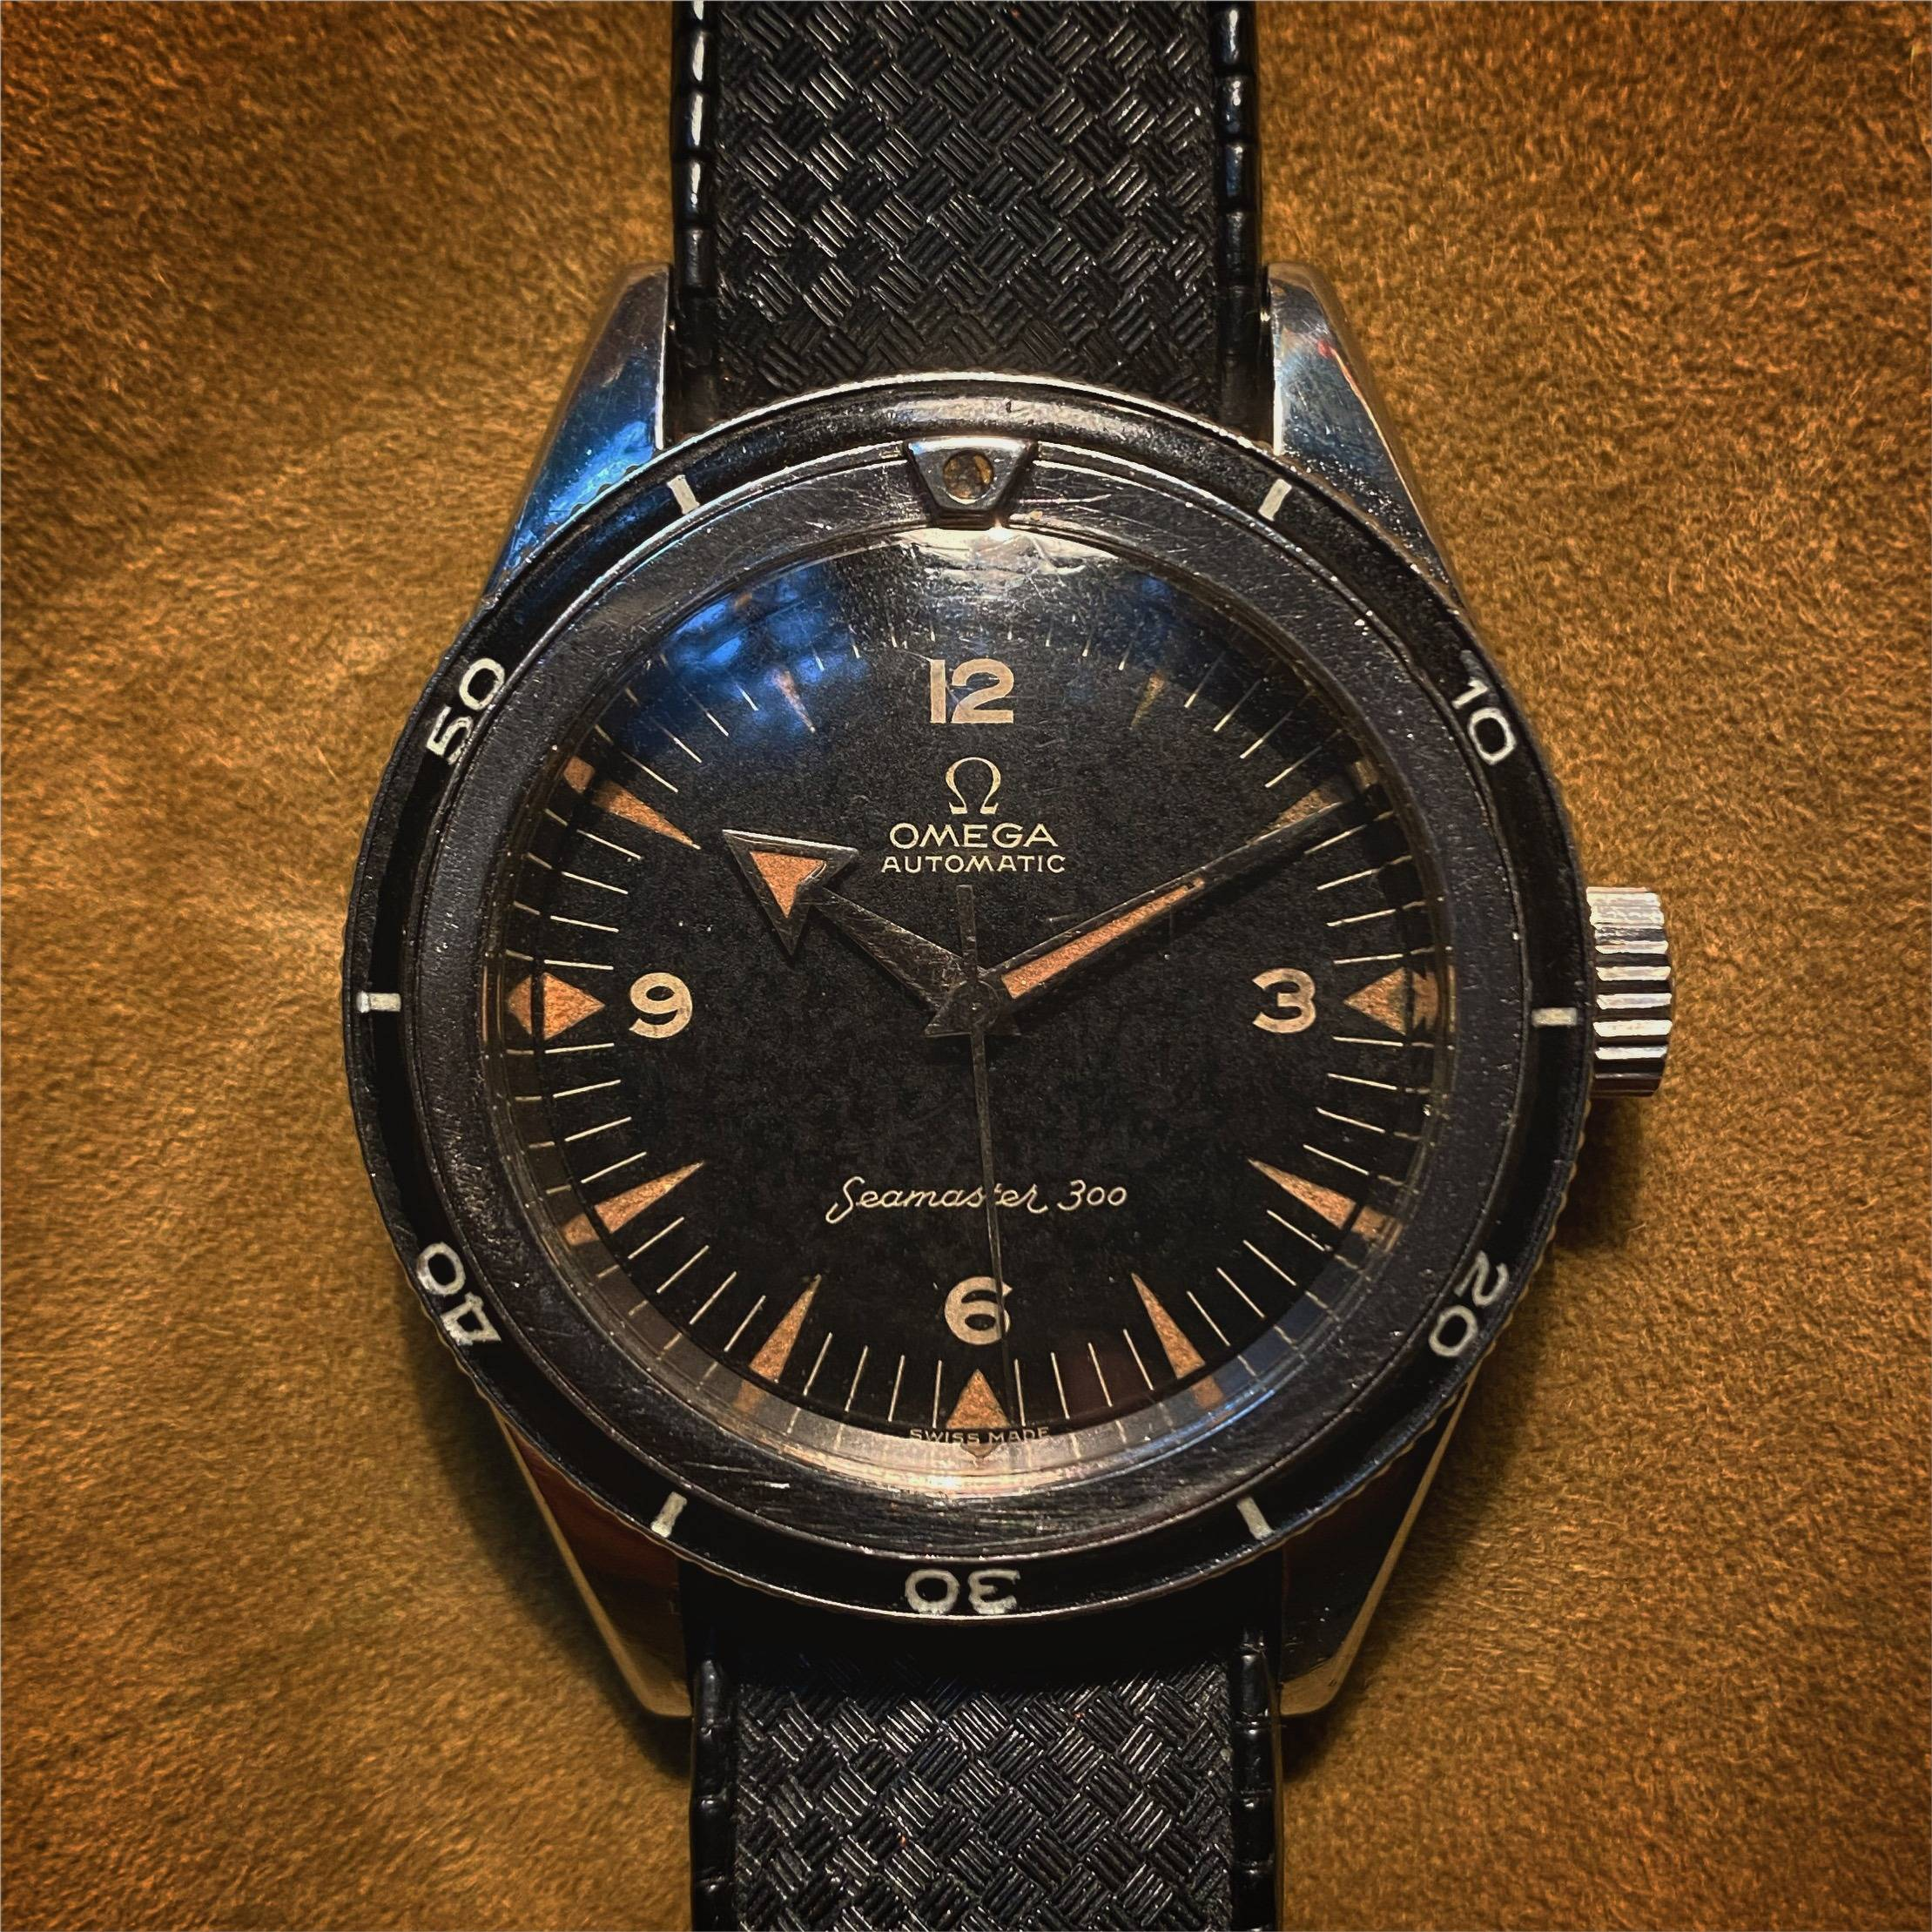 OMEGA SEAMASTER 300 'Broad Arrow'-1